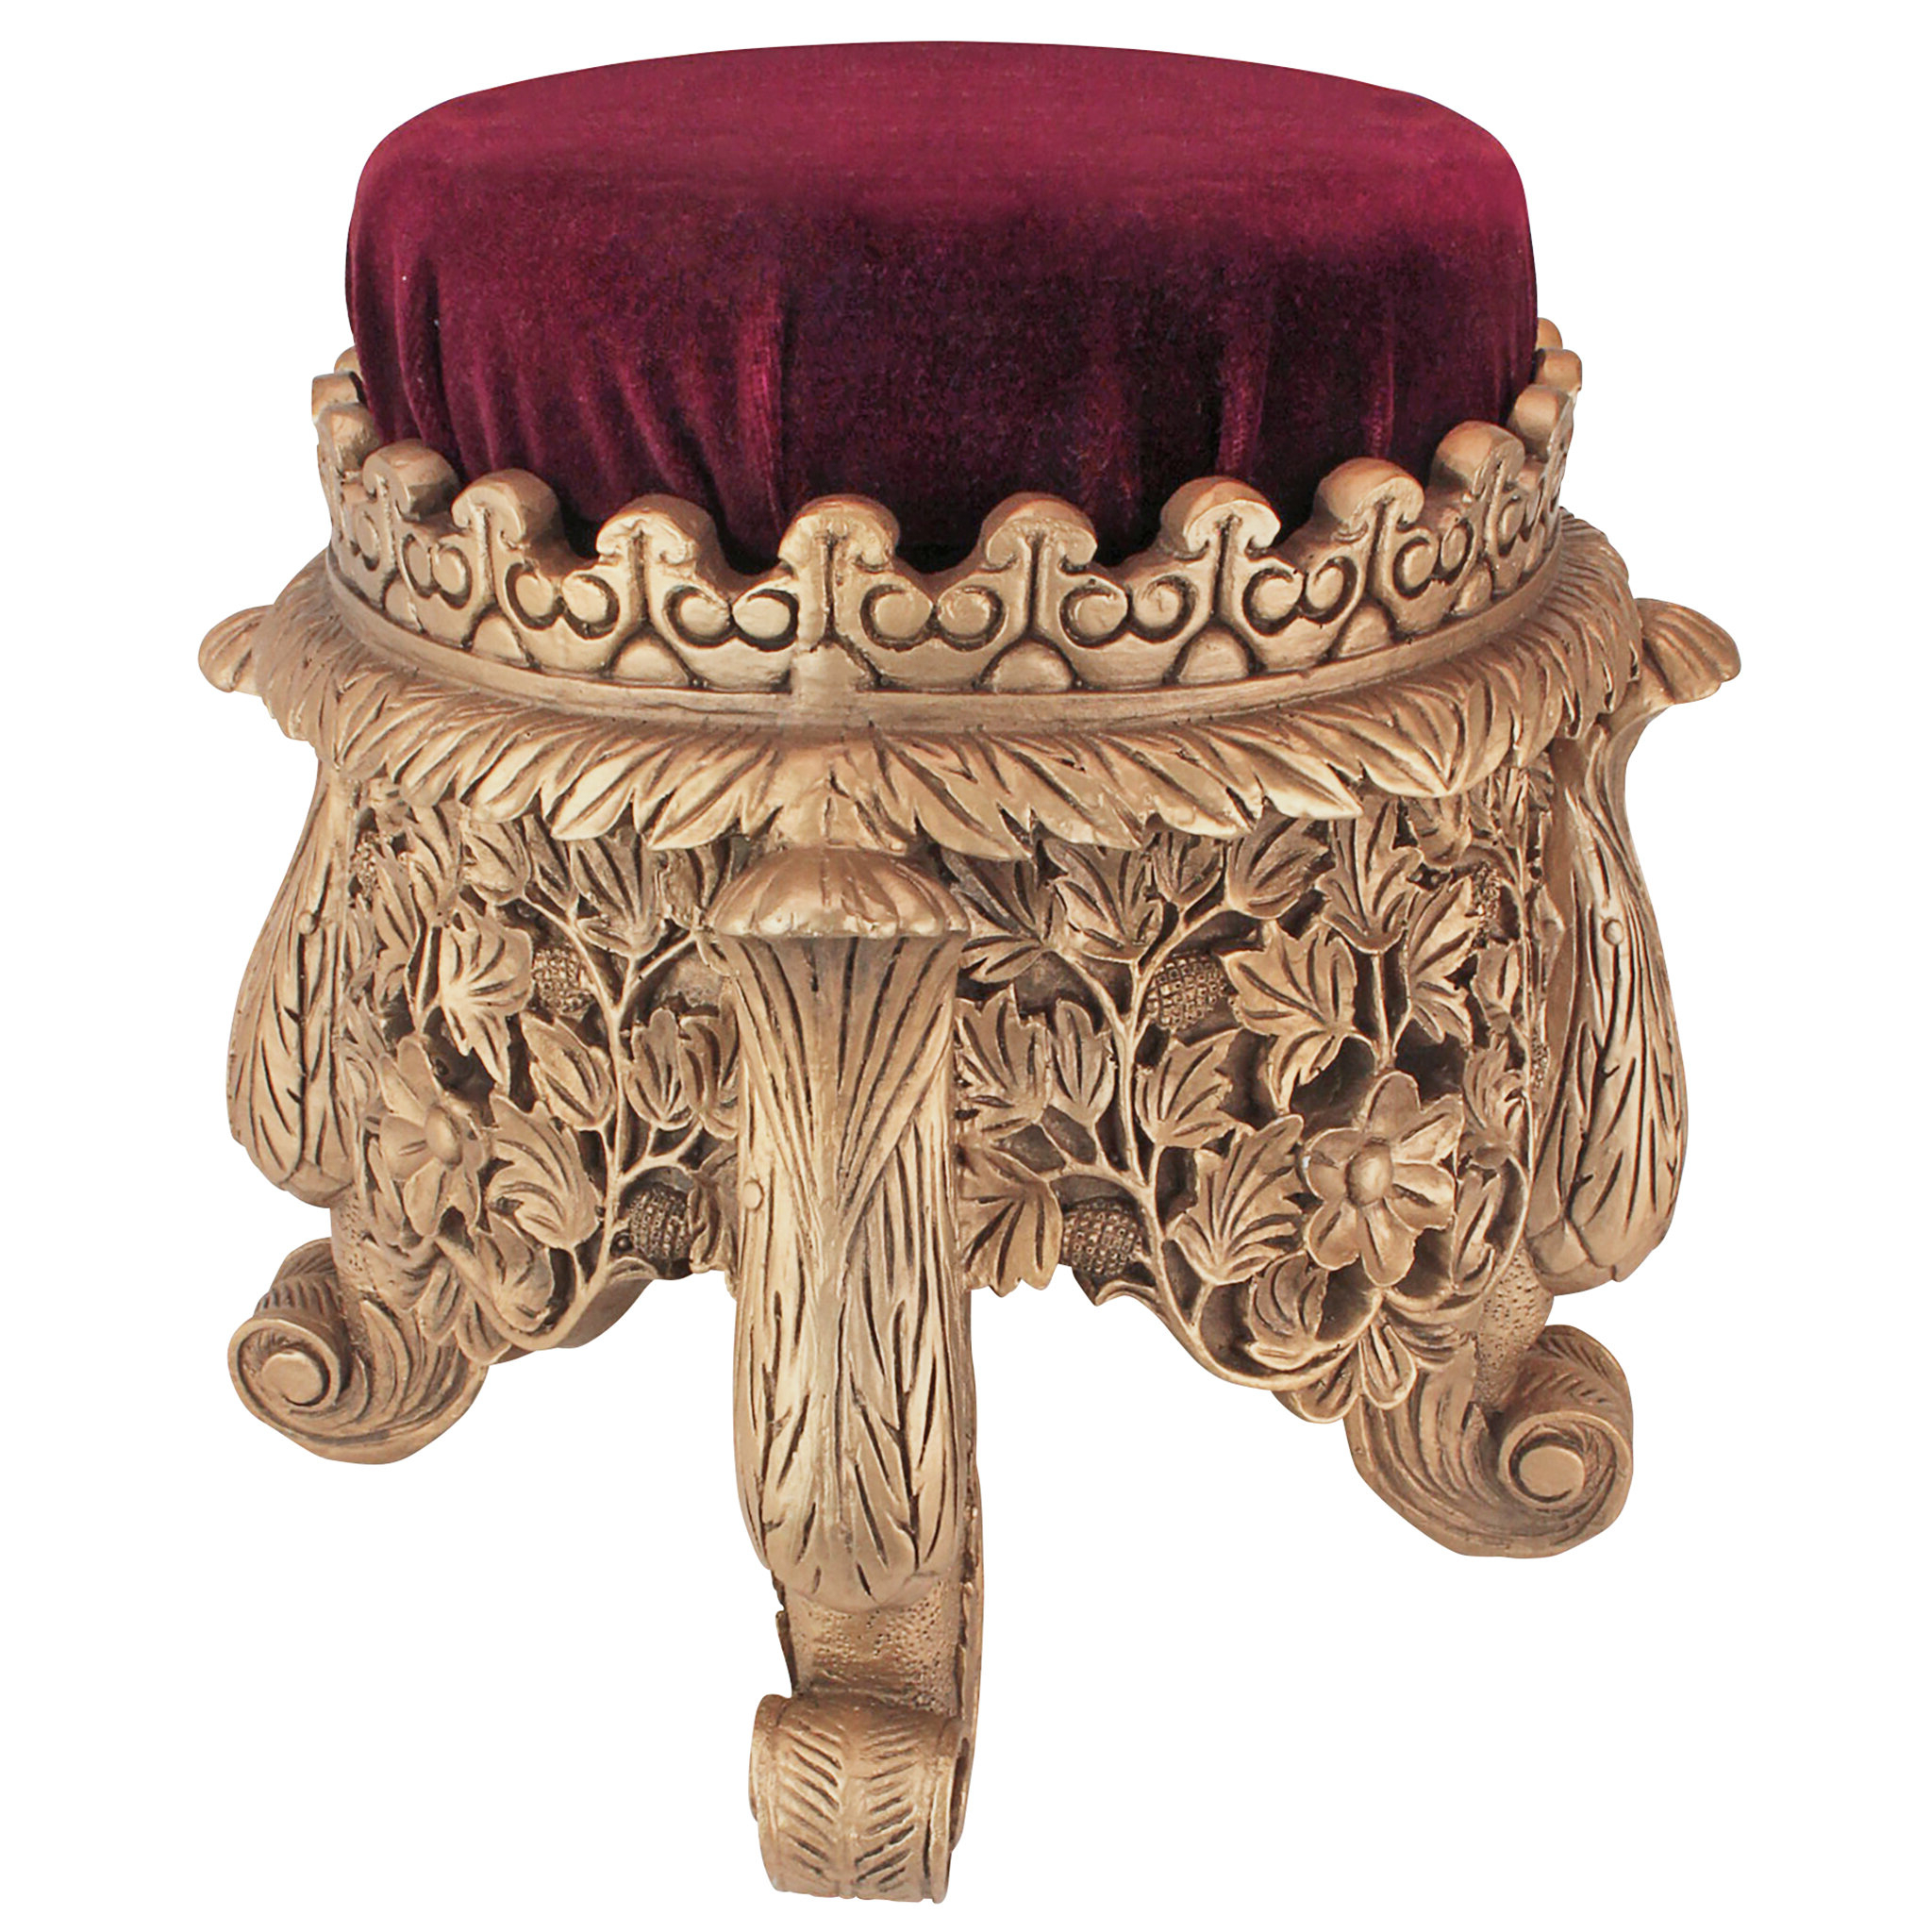 Well Known Middlet Owl Ceramic Garden Stools Throughout Sultan Suleiman The Magnificent Royal Accent Stool (View 21 of 30)